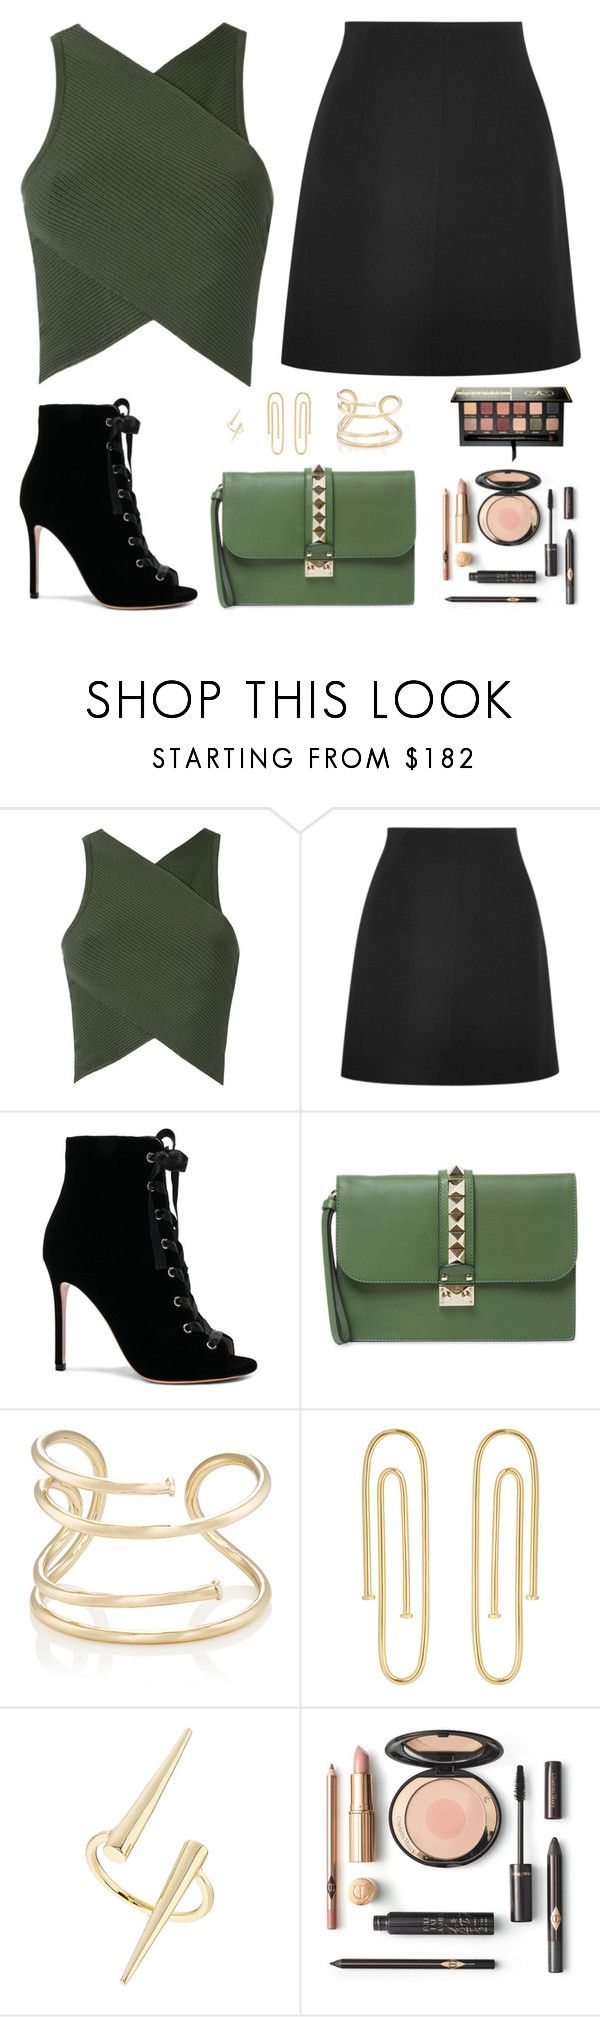 """""""Untitled #5116"""" by mdmsb on Polyvore featuring EGREY, Chloé, Gianvito Rossi, Valentino, Jennifer Fisher and Anastasia Beverly Hills"""